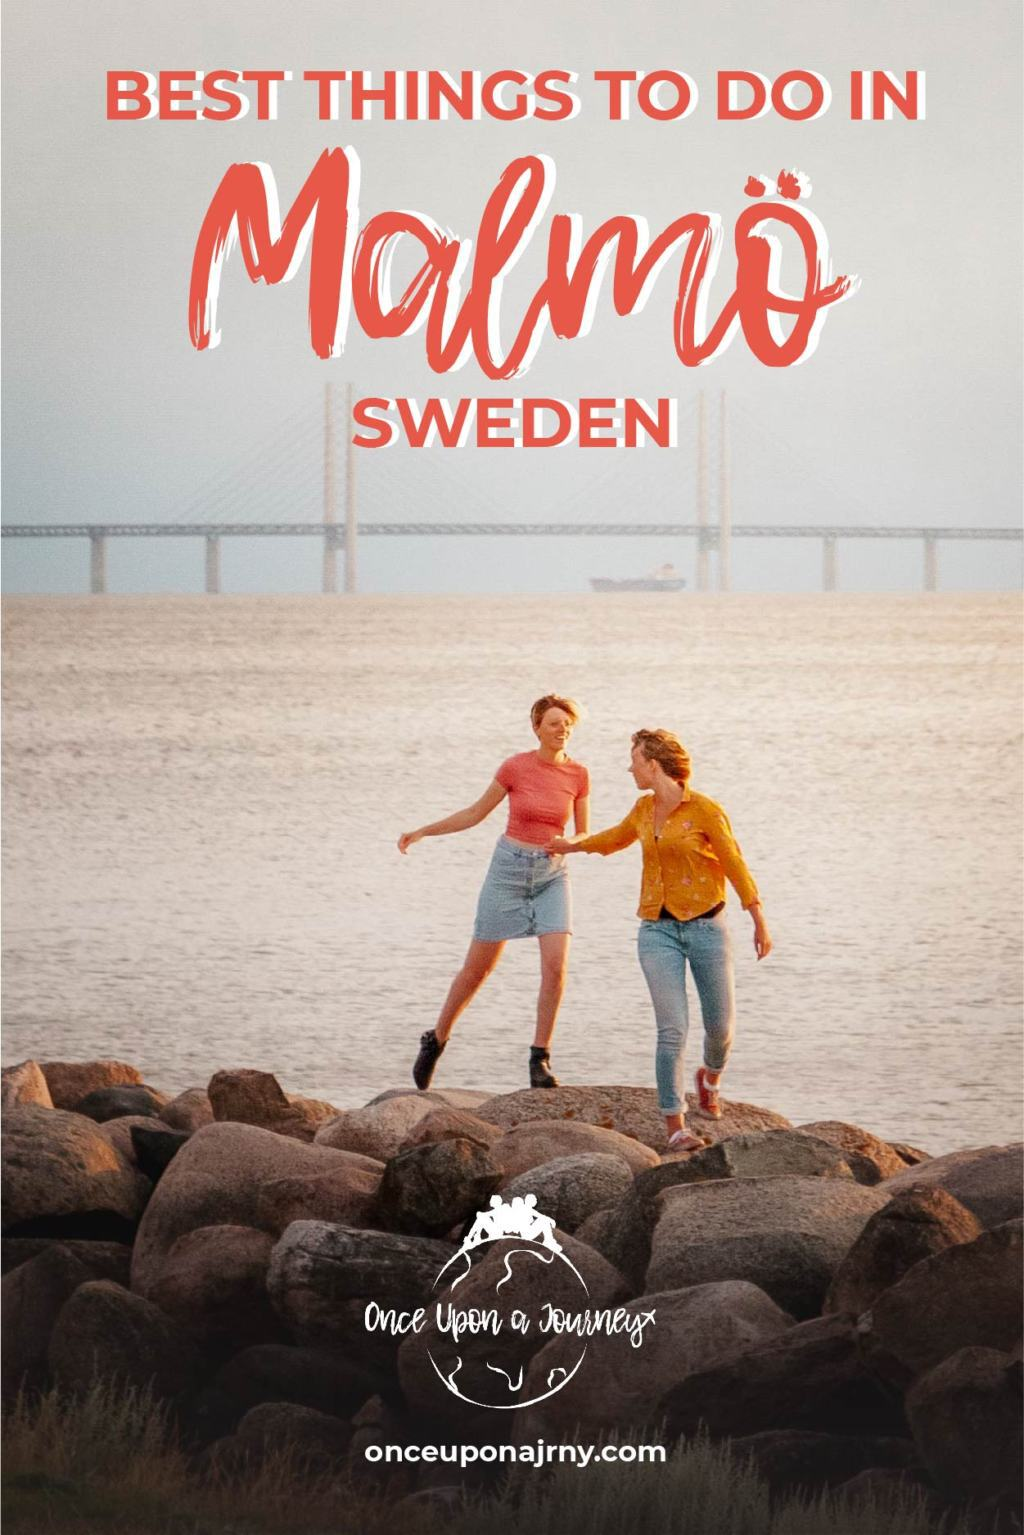 Best Things to Do in Malmö Sweden